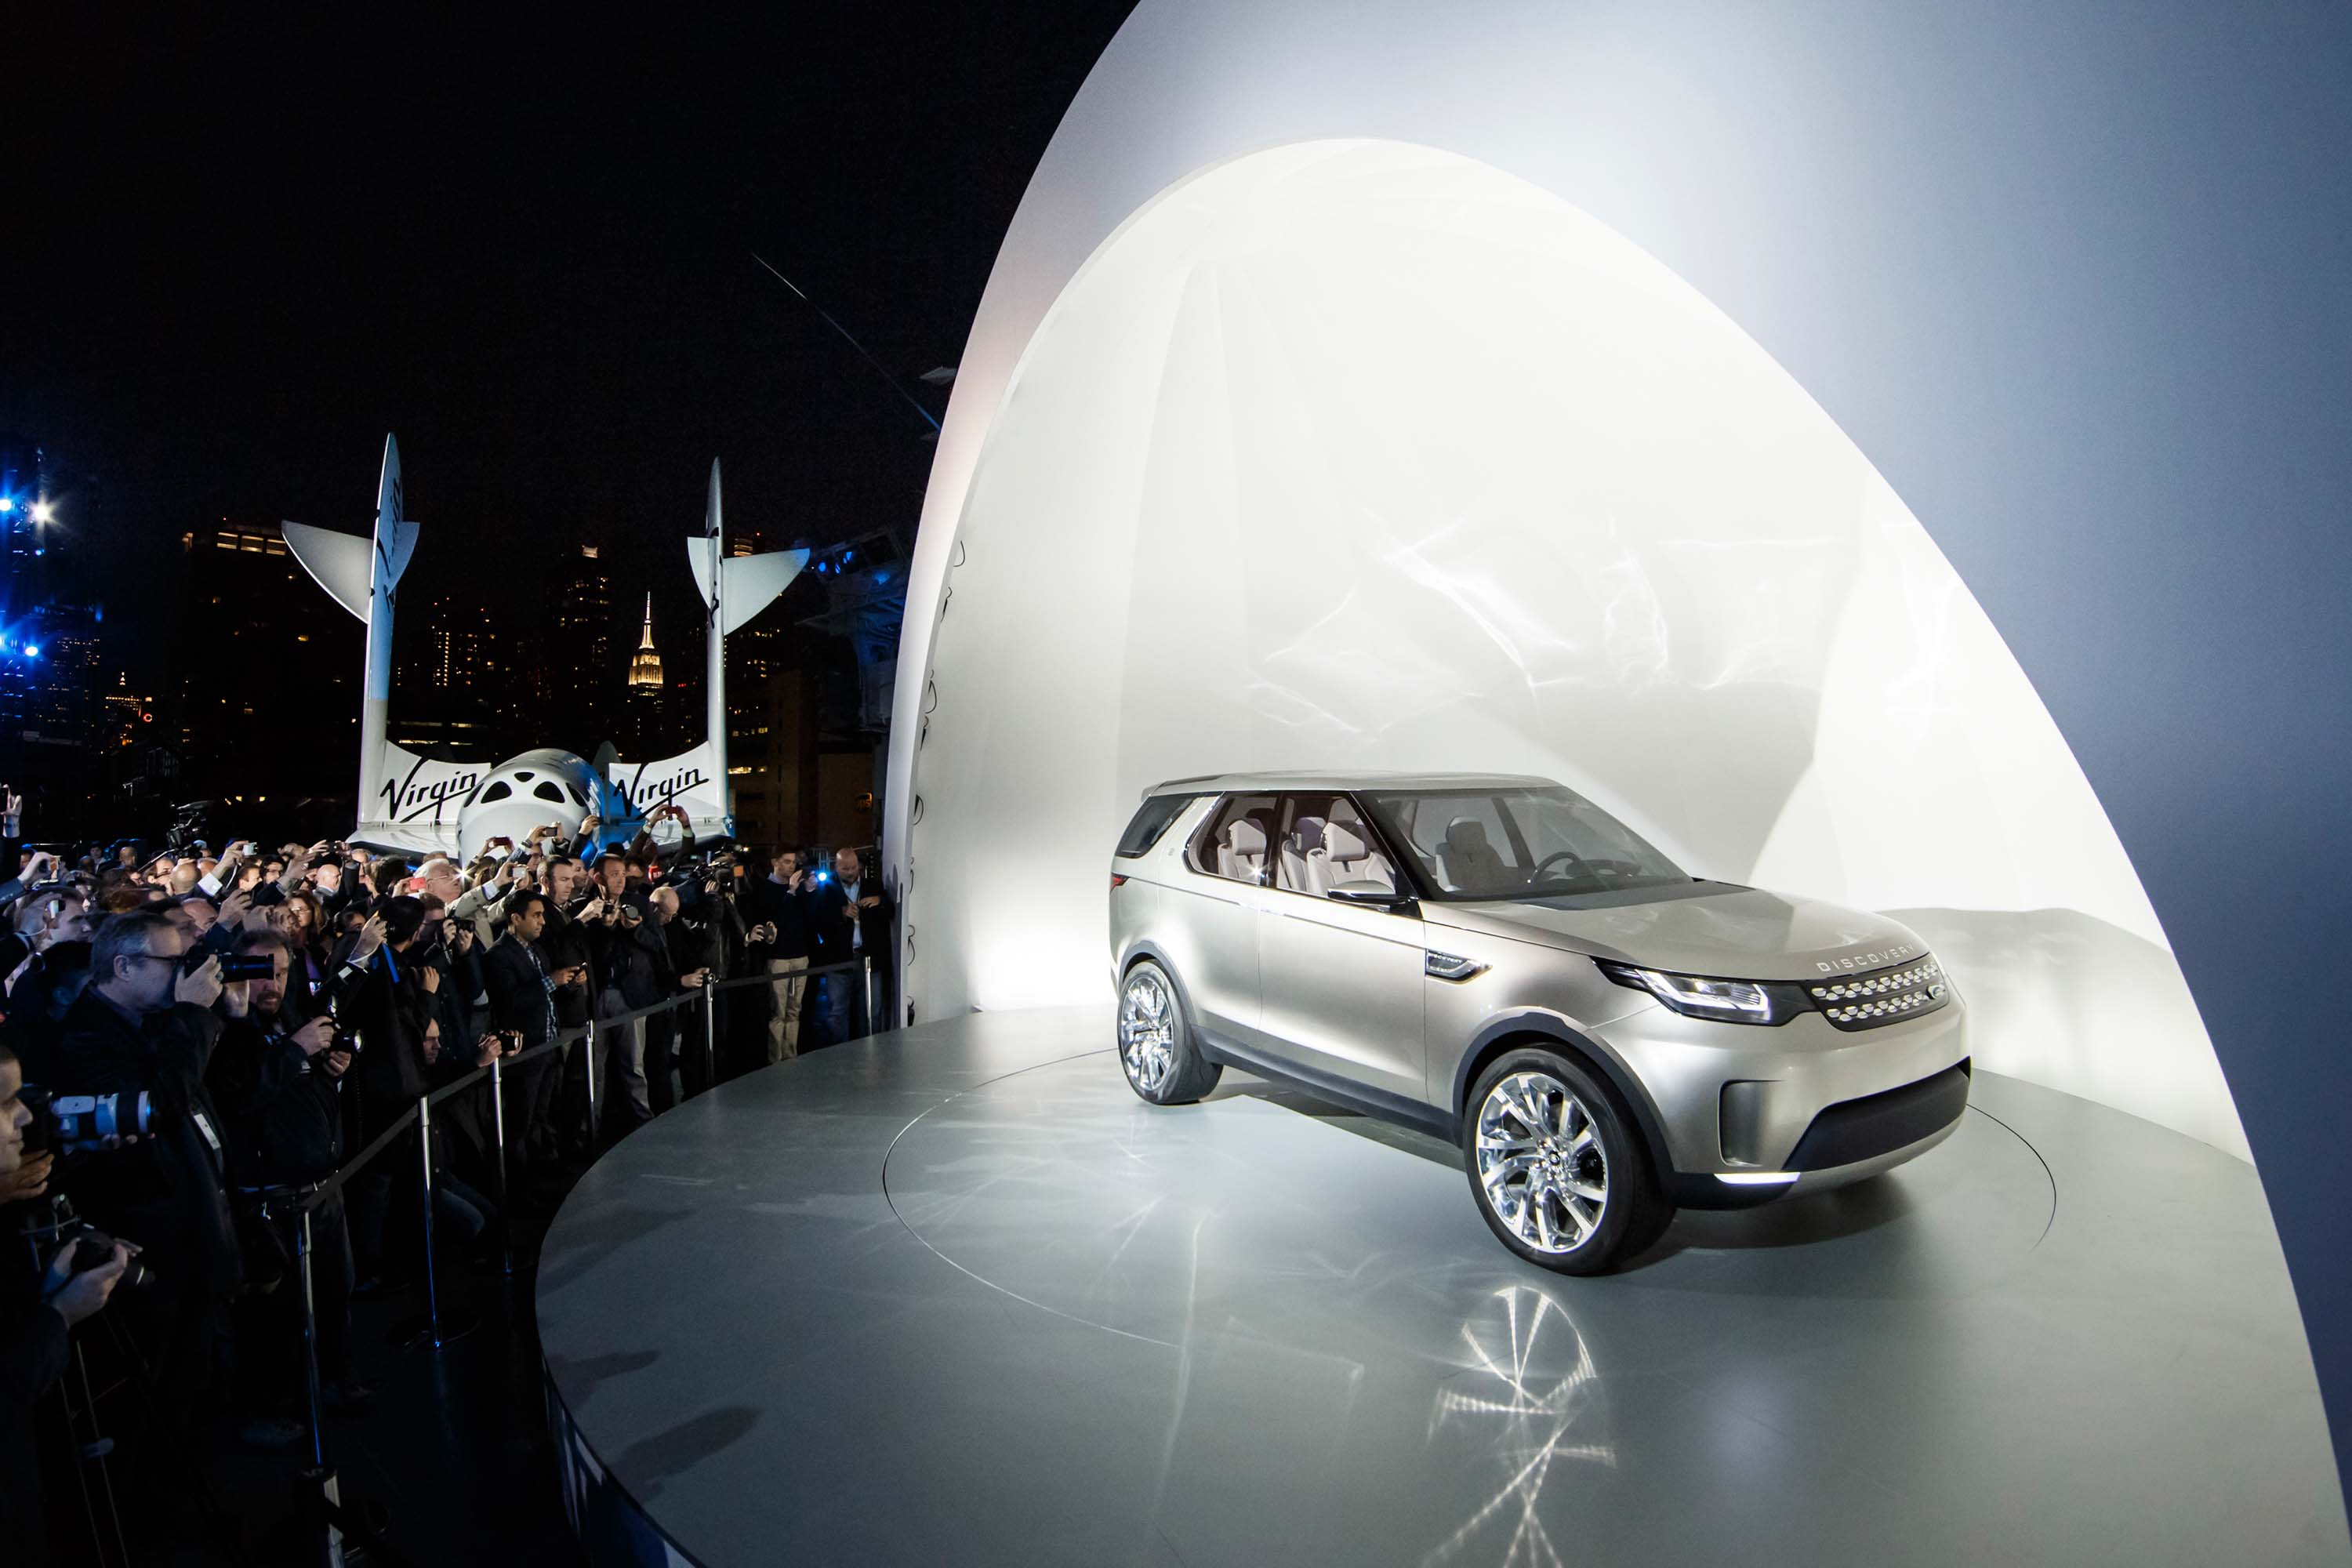 http://images.betweentheaxles.net/_uploads/2014/04/land-rover-discovery-vision-concept-car-115.jpg